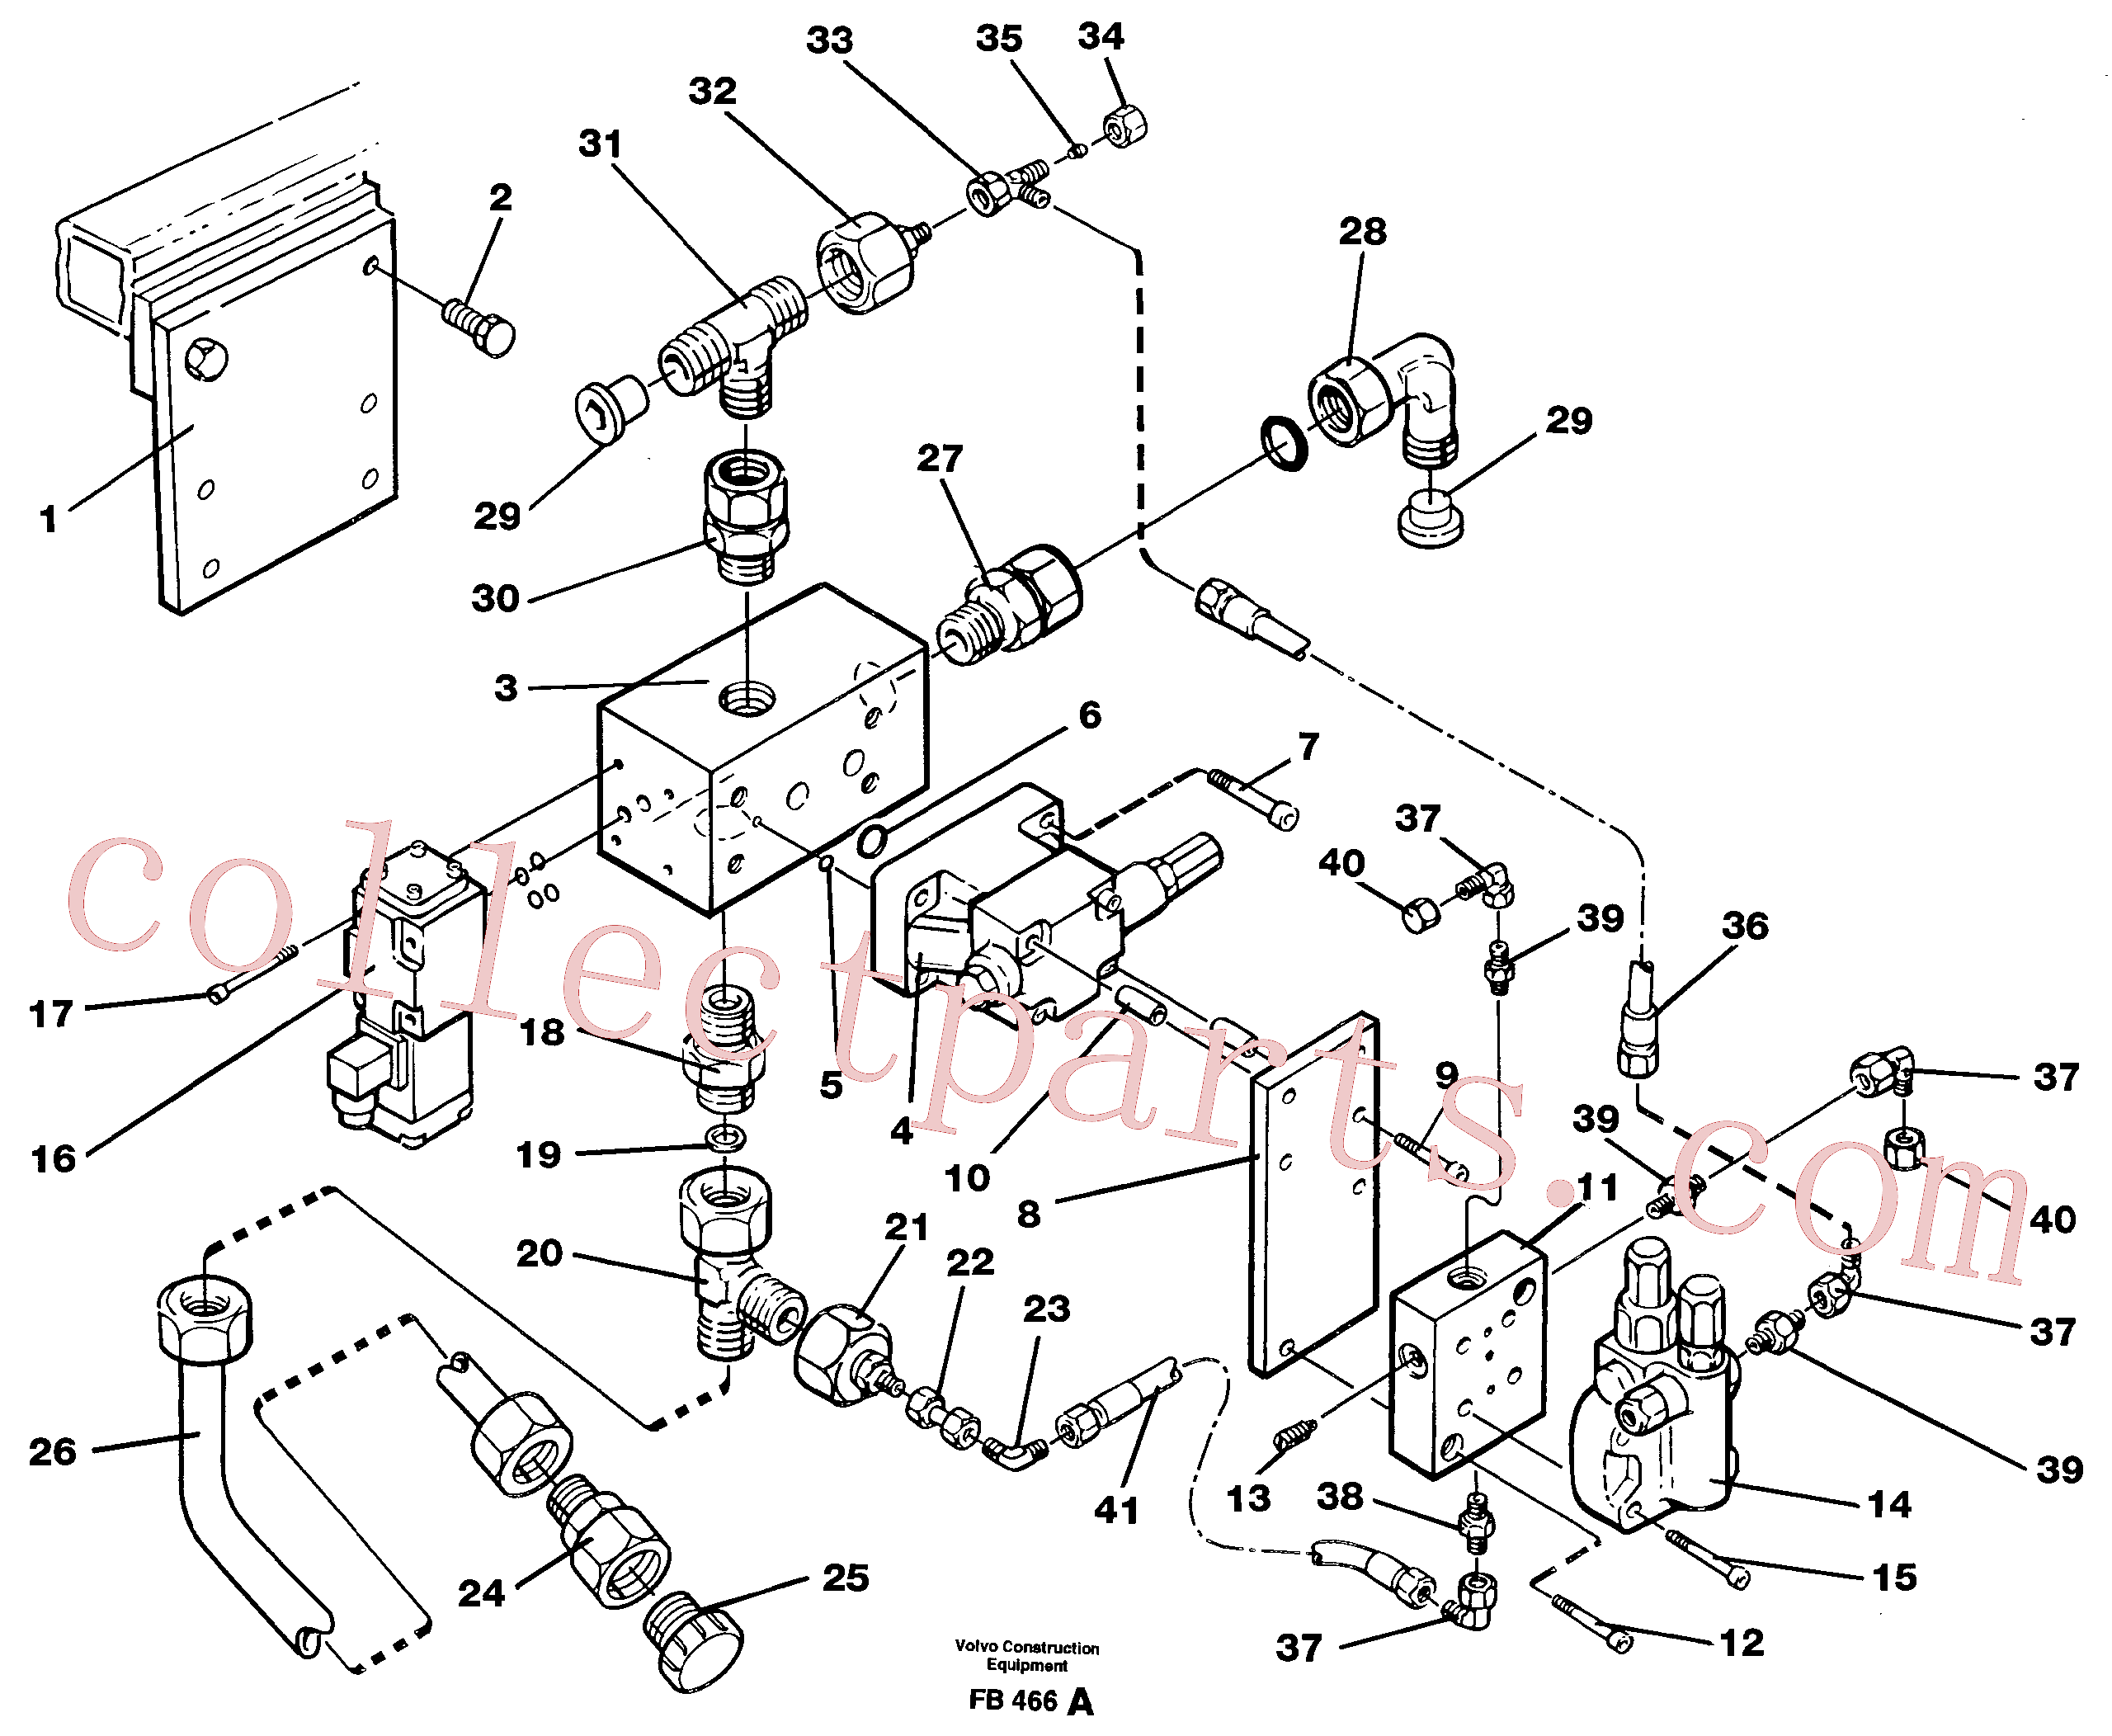 VOE14211065 for Volvo Magnet equipment, Älmhult, valve assembly(FB466A assembly)